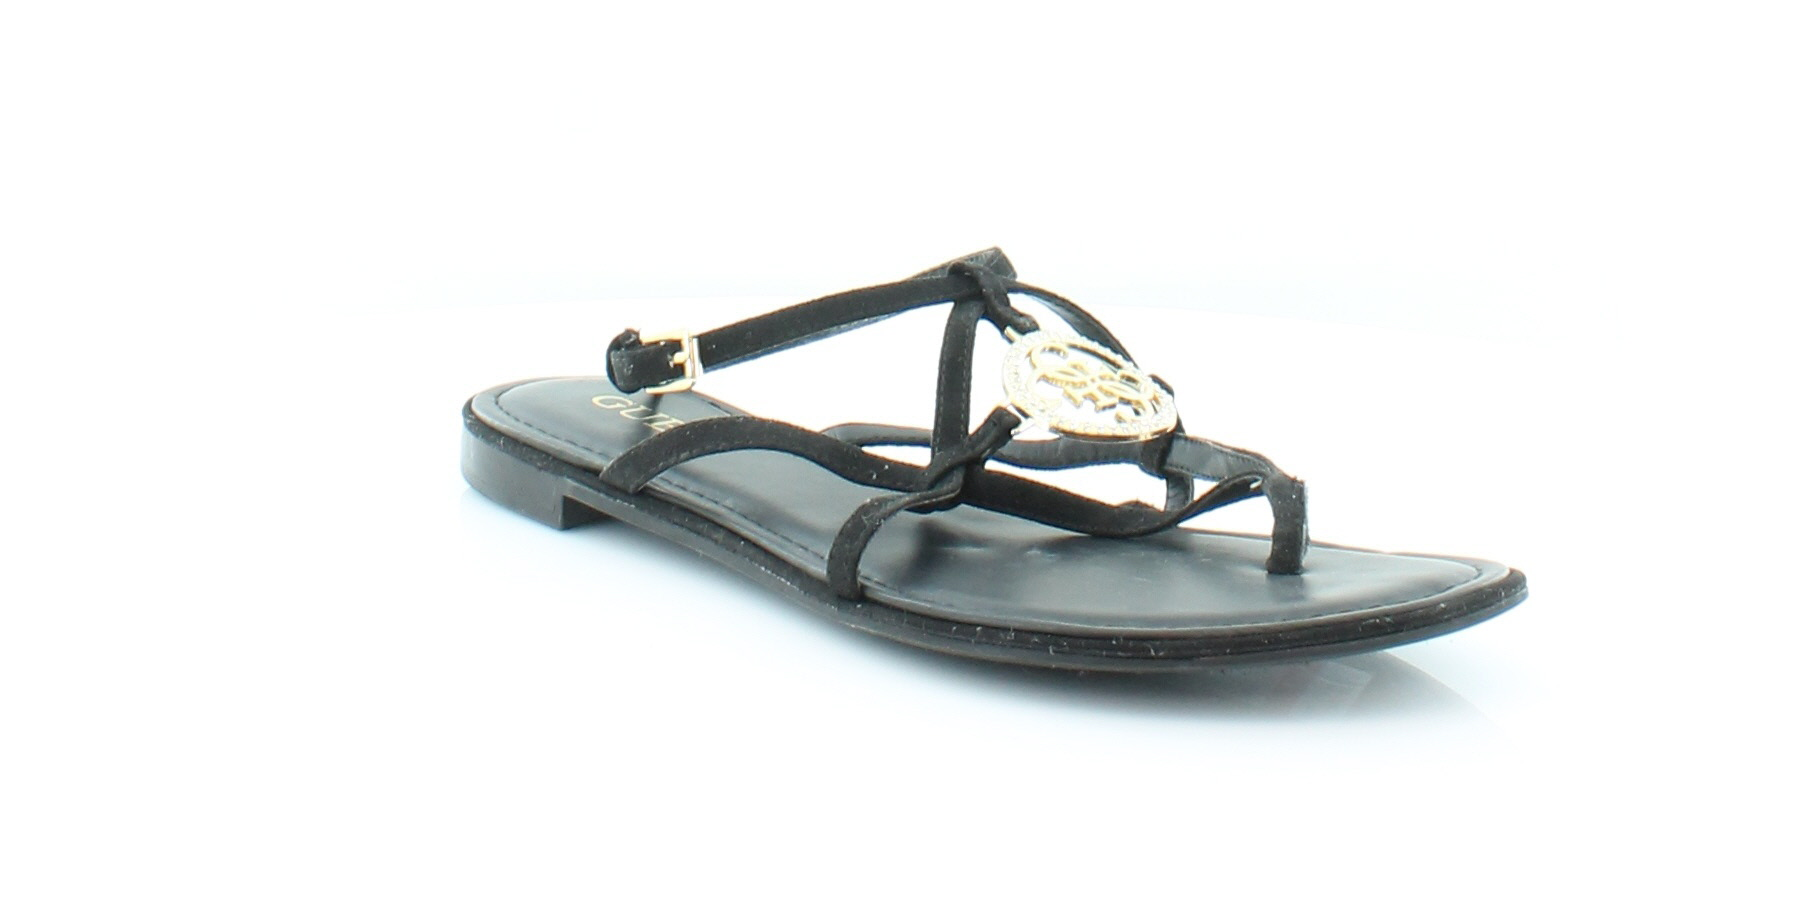 dd5dbc75f99a Guess Romie Black Womens Shoes Size 10 M Sandals MSRP  69 ...